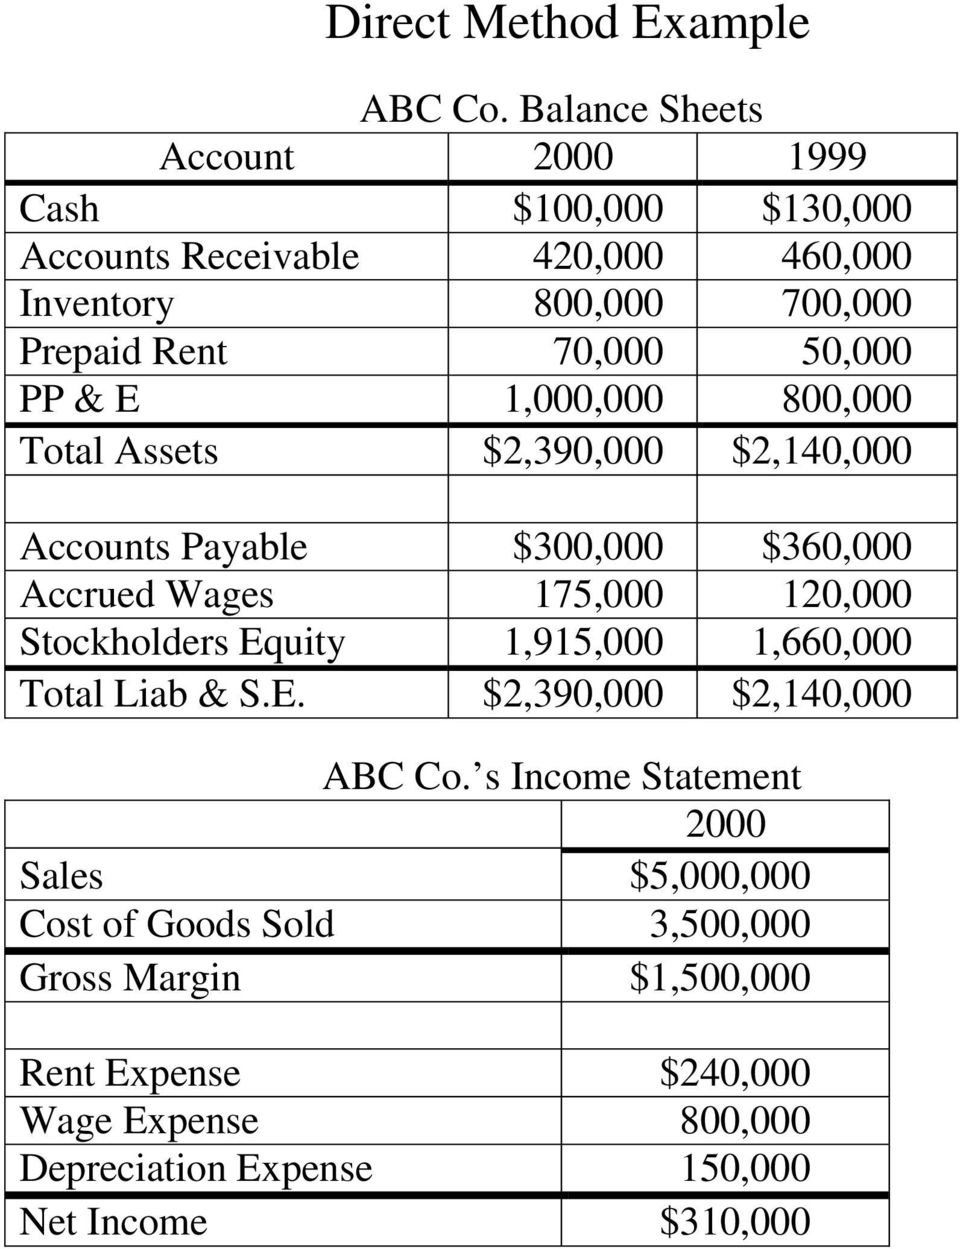 50,000 PP & E 1,000,000 800,000 Total Assets $2,390,000 $2,140,000 Accounts Payable $300,000 $360,000 Accrued Wages 175,000 120,000